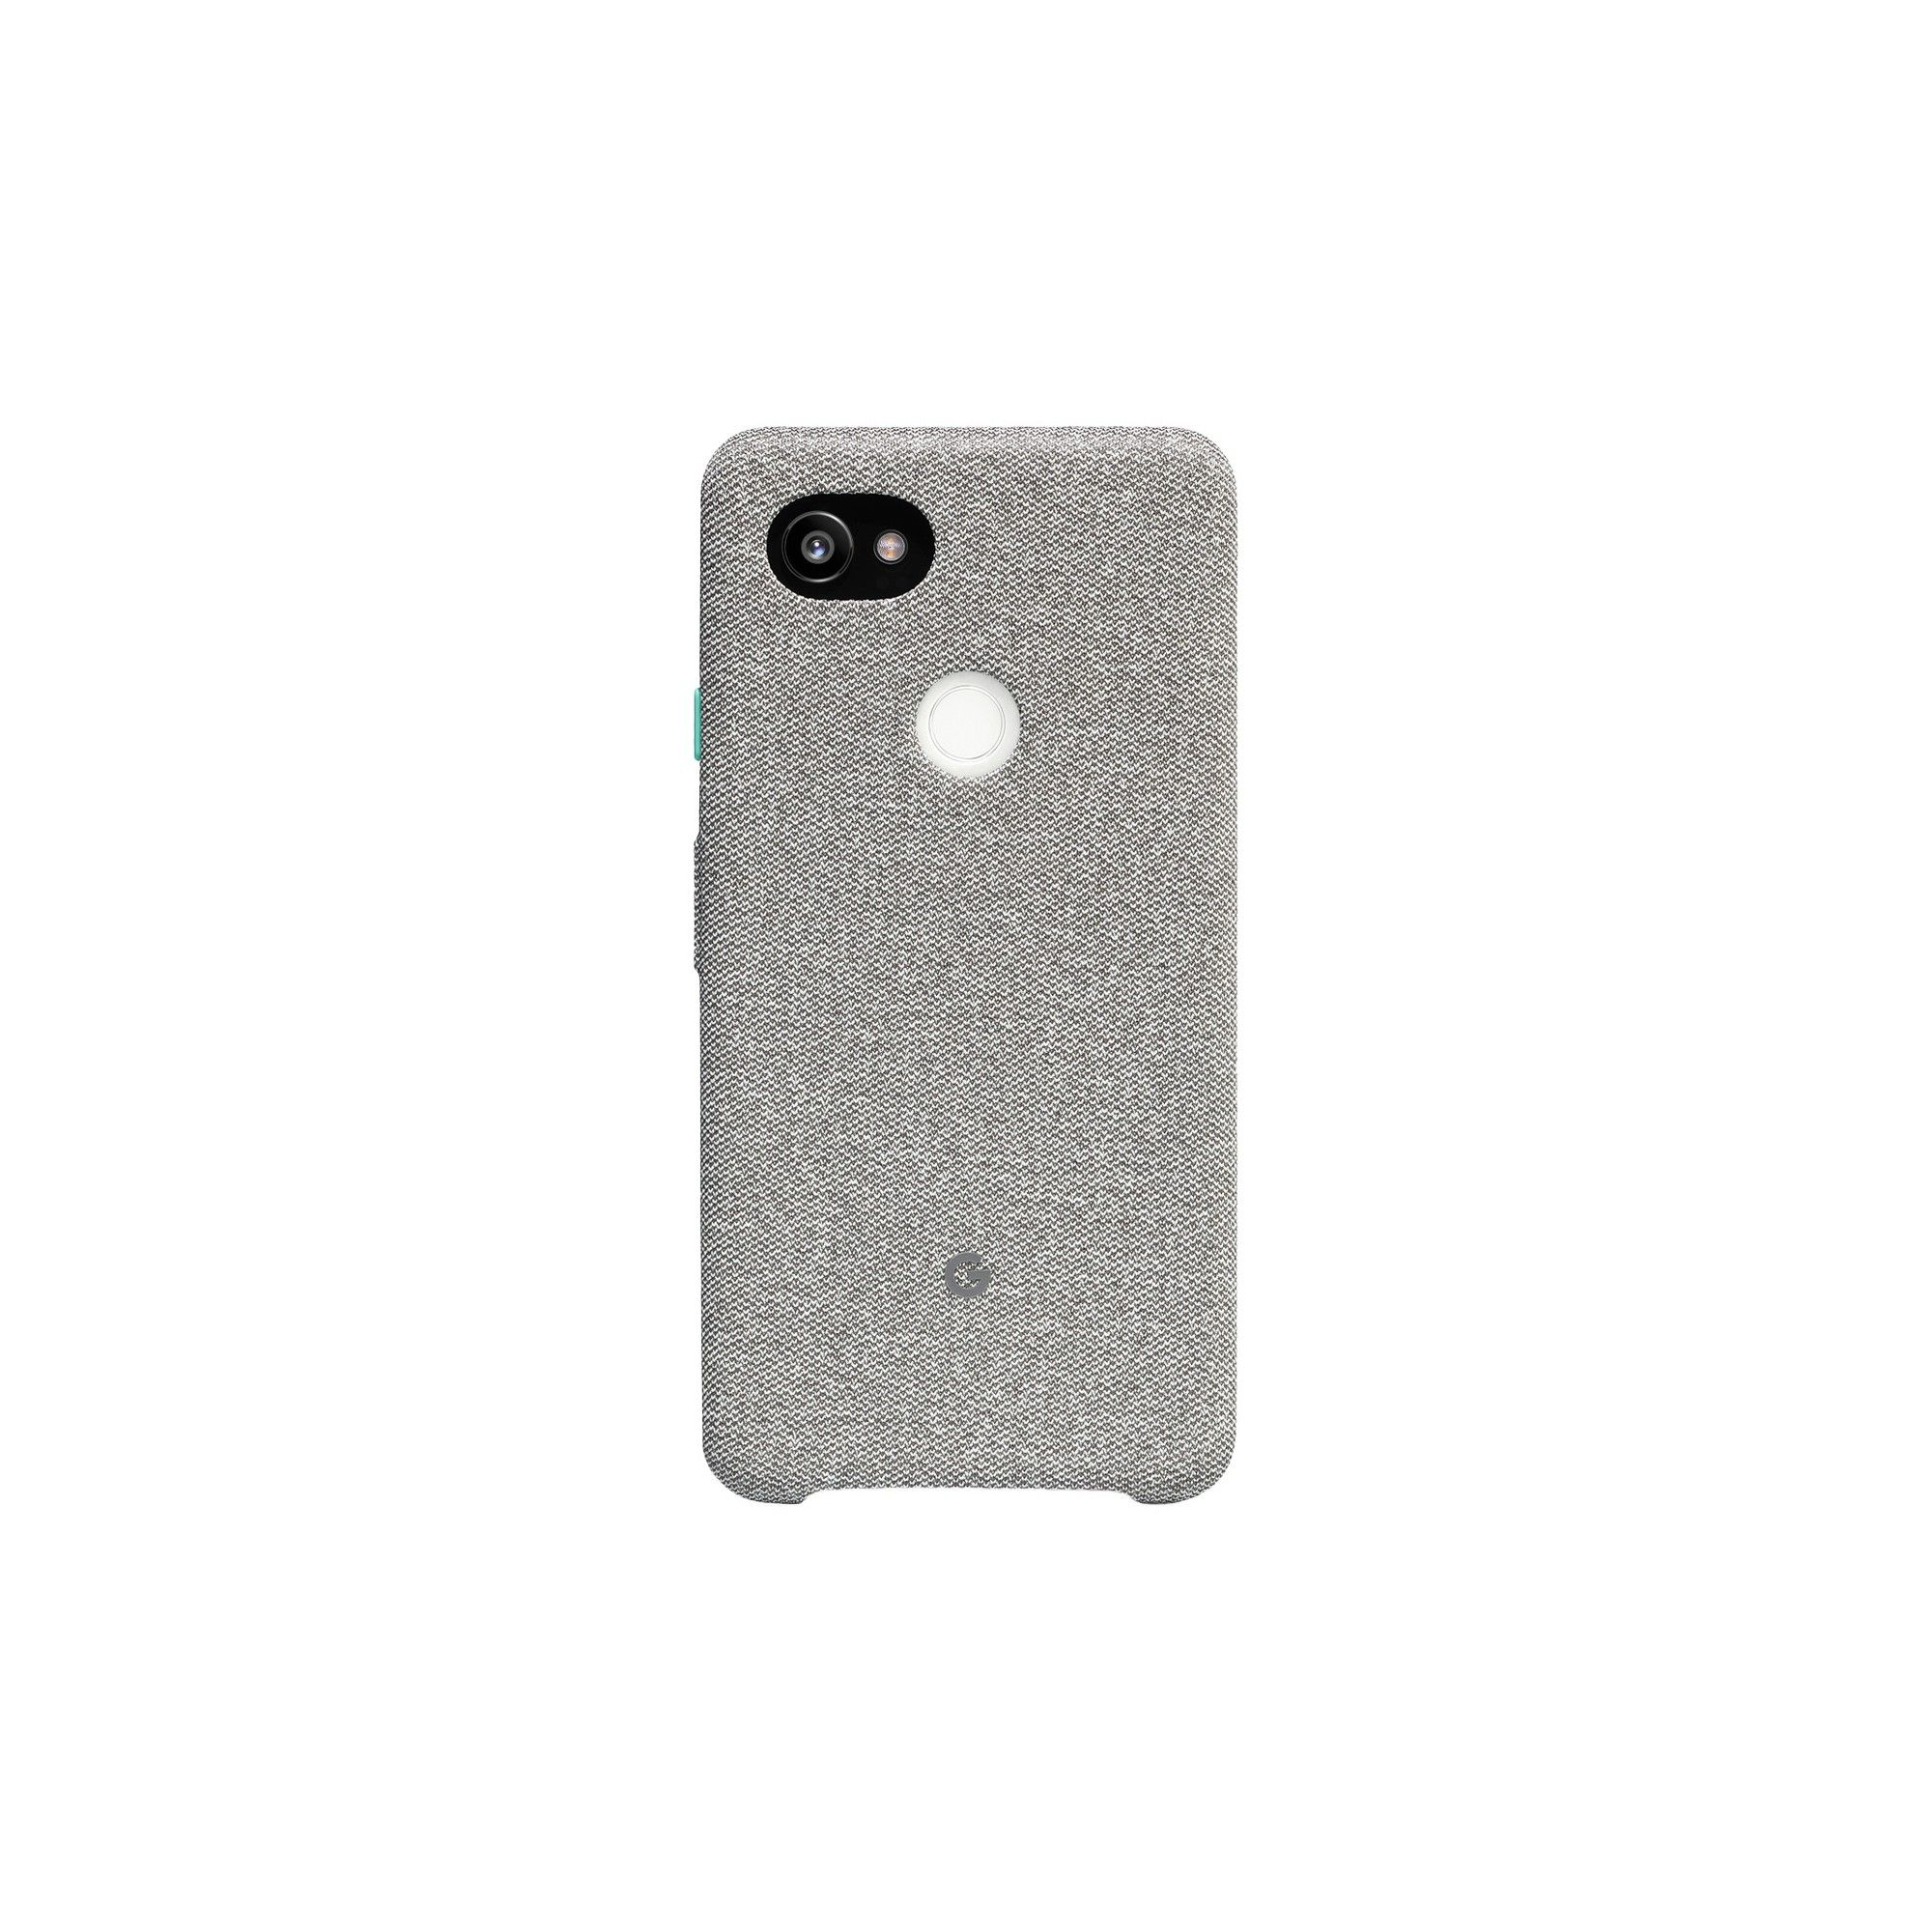 pretty nice 69710 da7de Google Pixel 2 XL Fabric Case - Cement, Gray | Products | Google ...